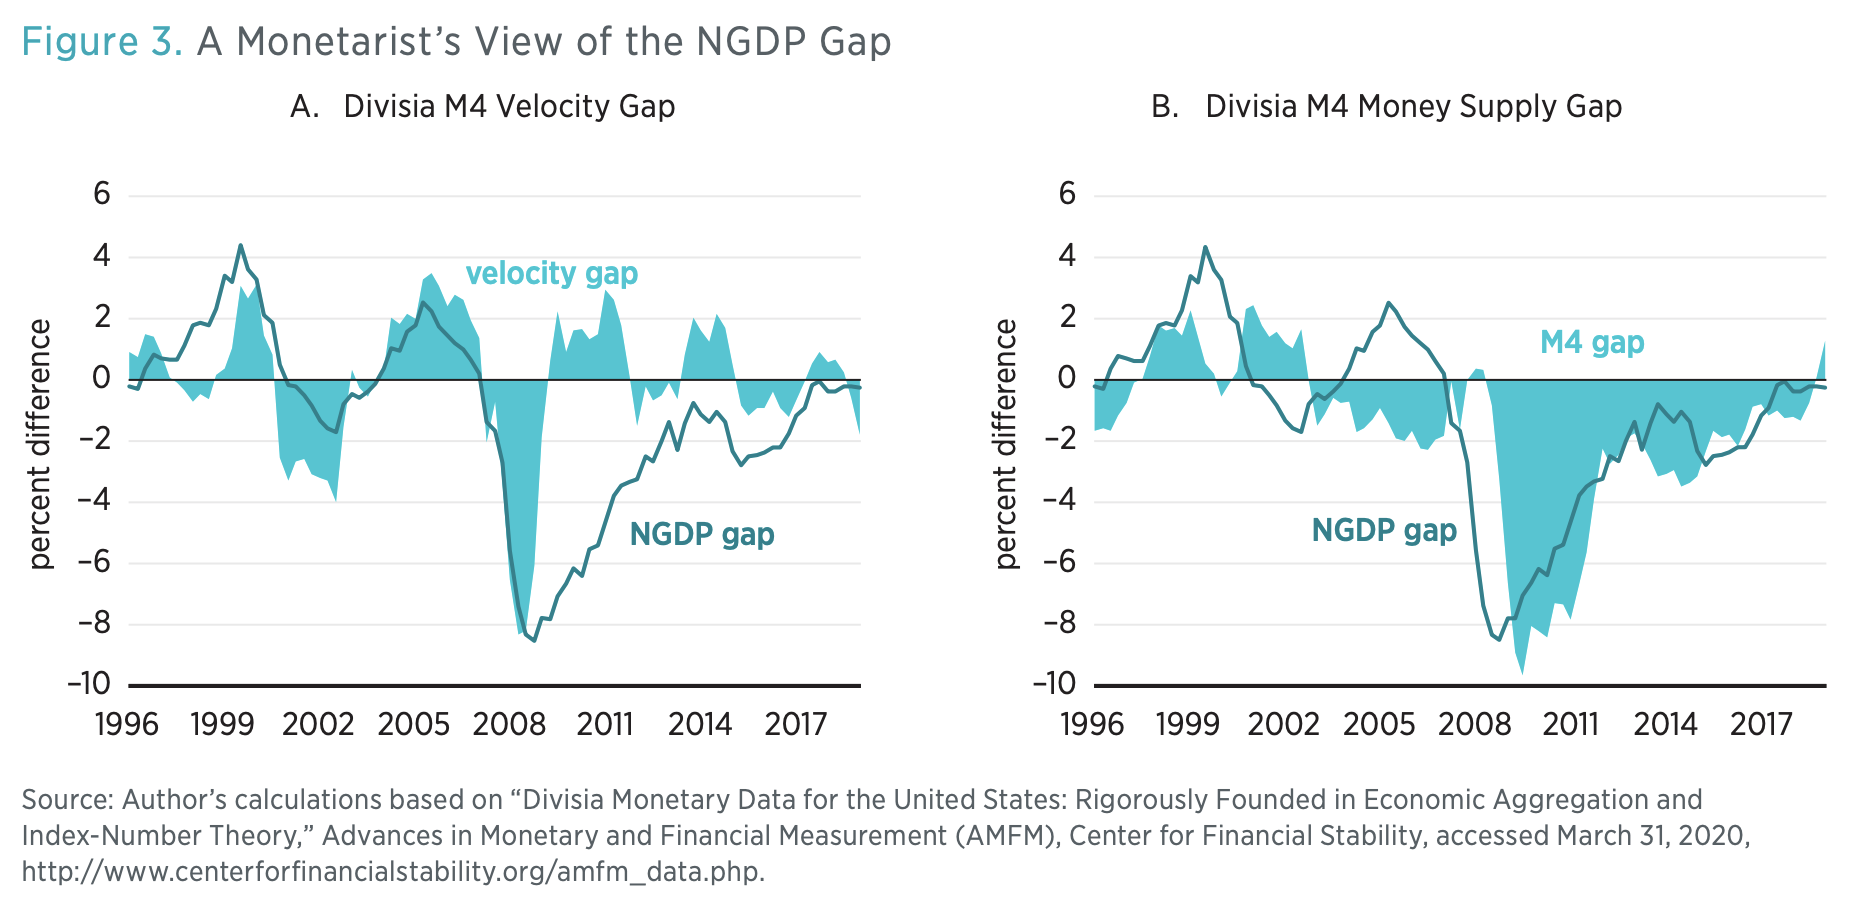 Figure 3. A Monetarist's View of the NGDP Gap